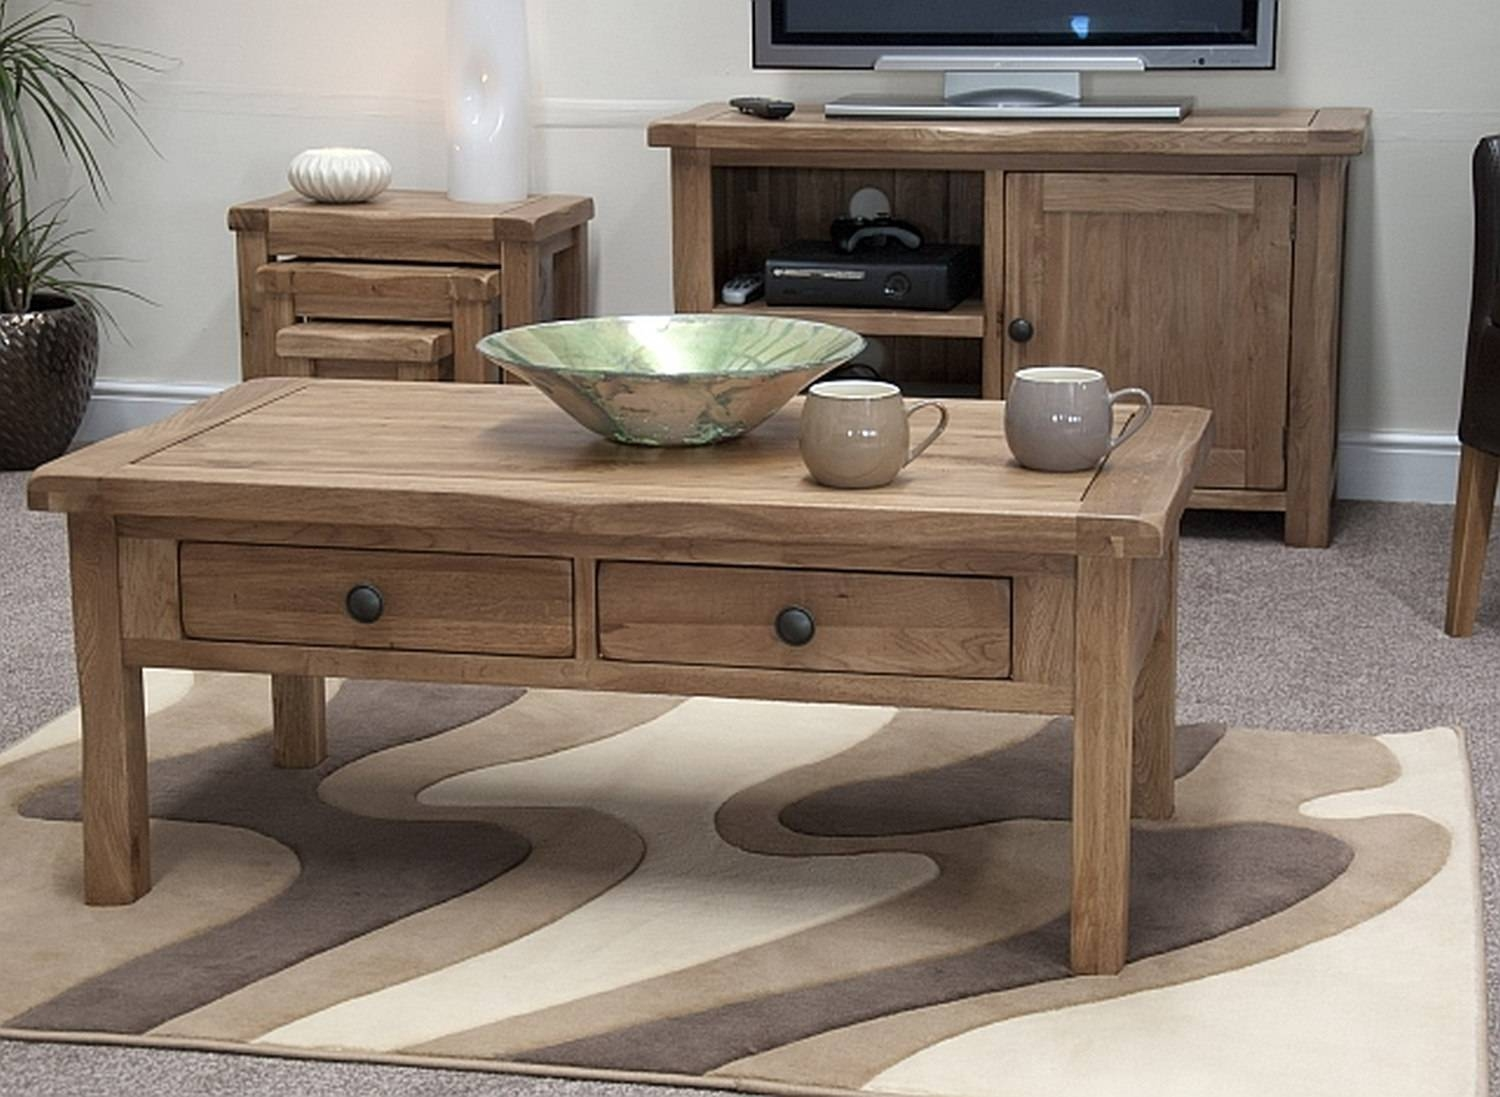 Rustic Coffee Table Sets With Antique Rustic Coffee Tables (View 5 of 30)